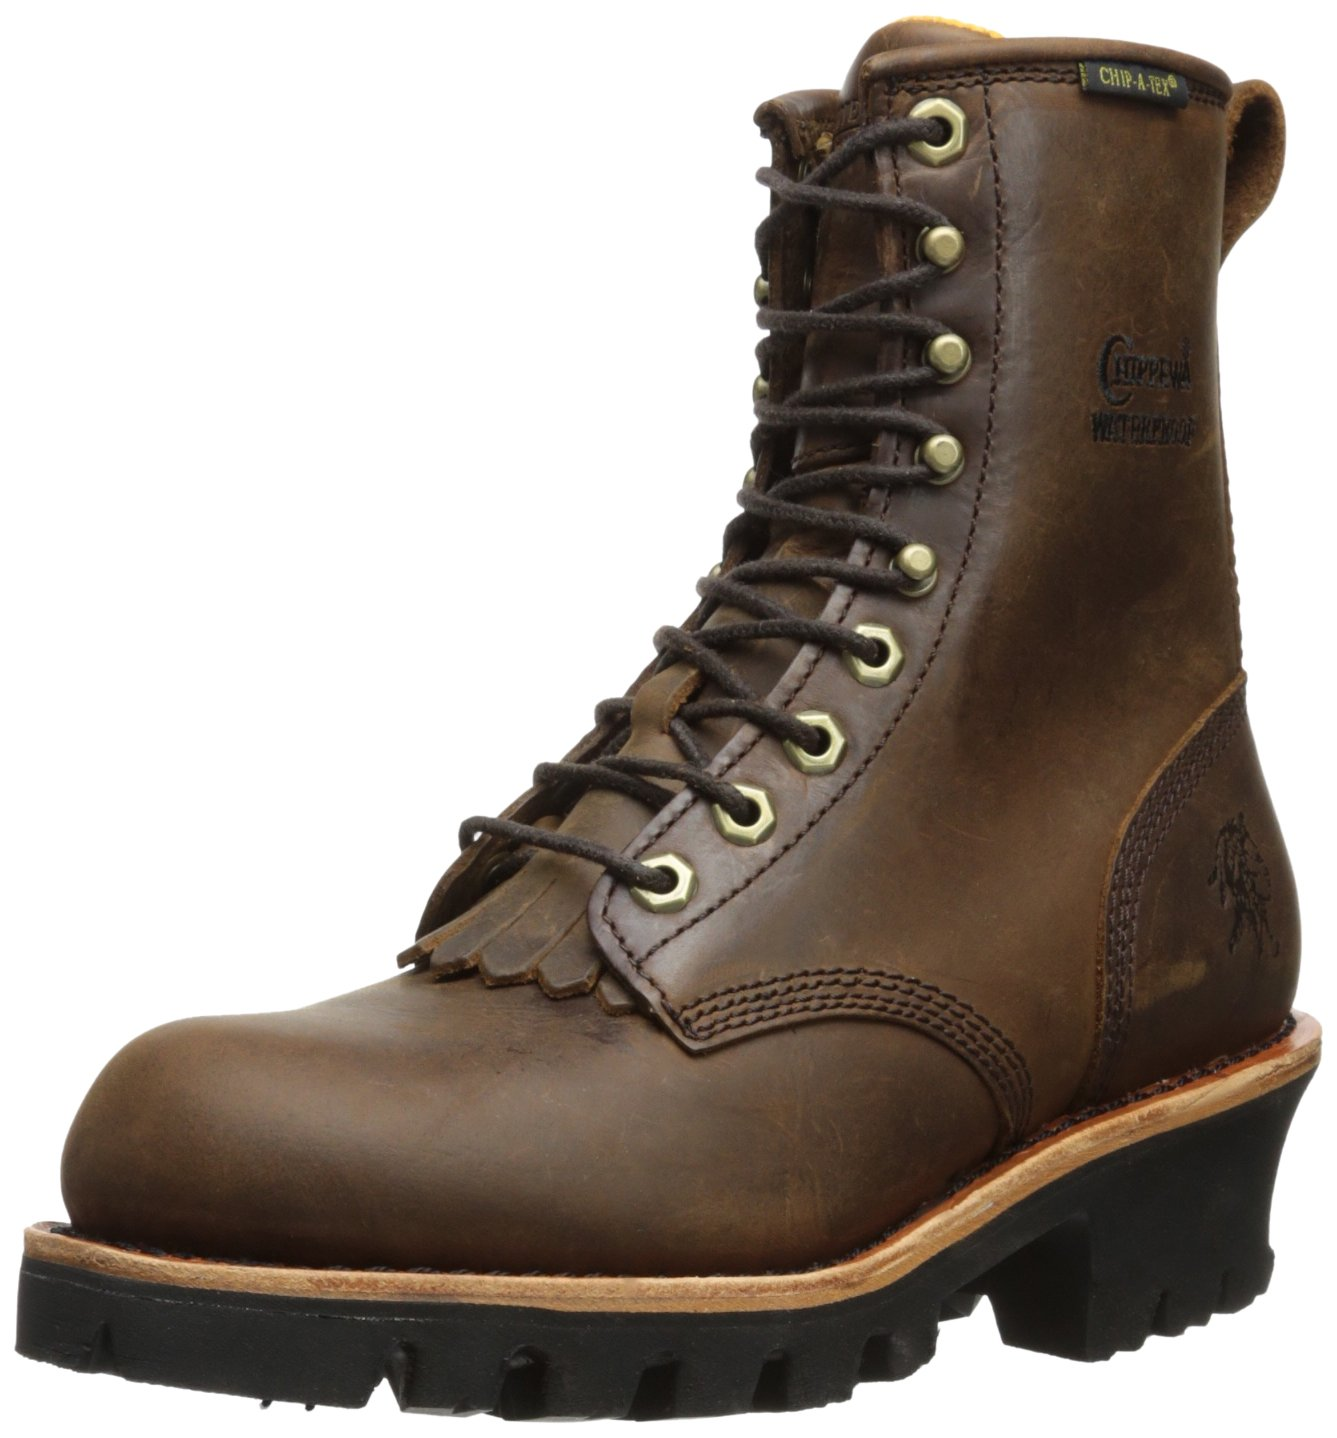 Chippewa Women's 8'' Waterproof Insulated L26340 Logger Boot,Brown,9 M US